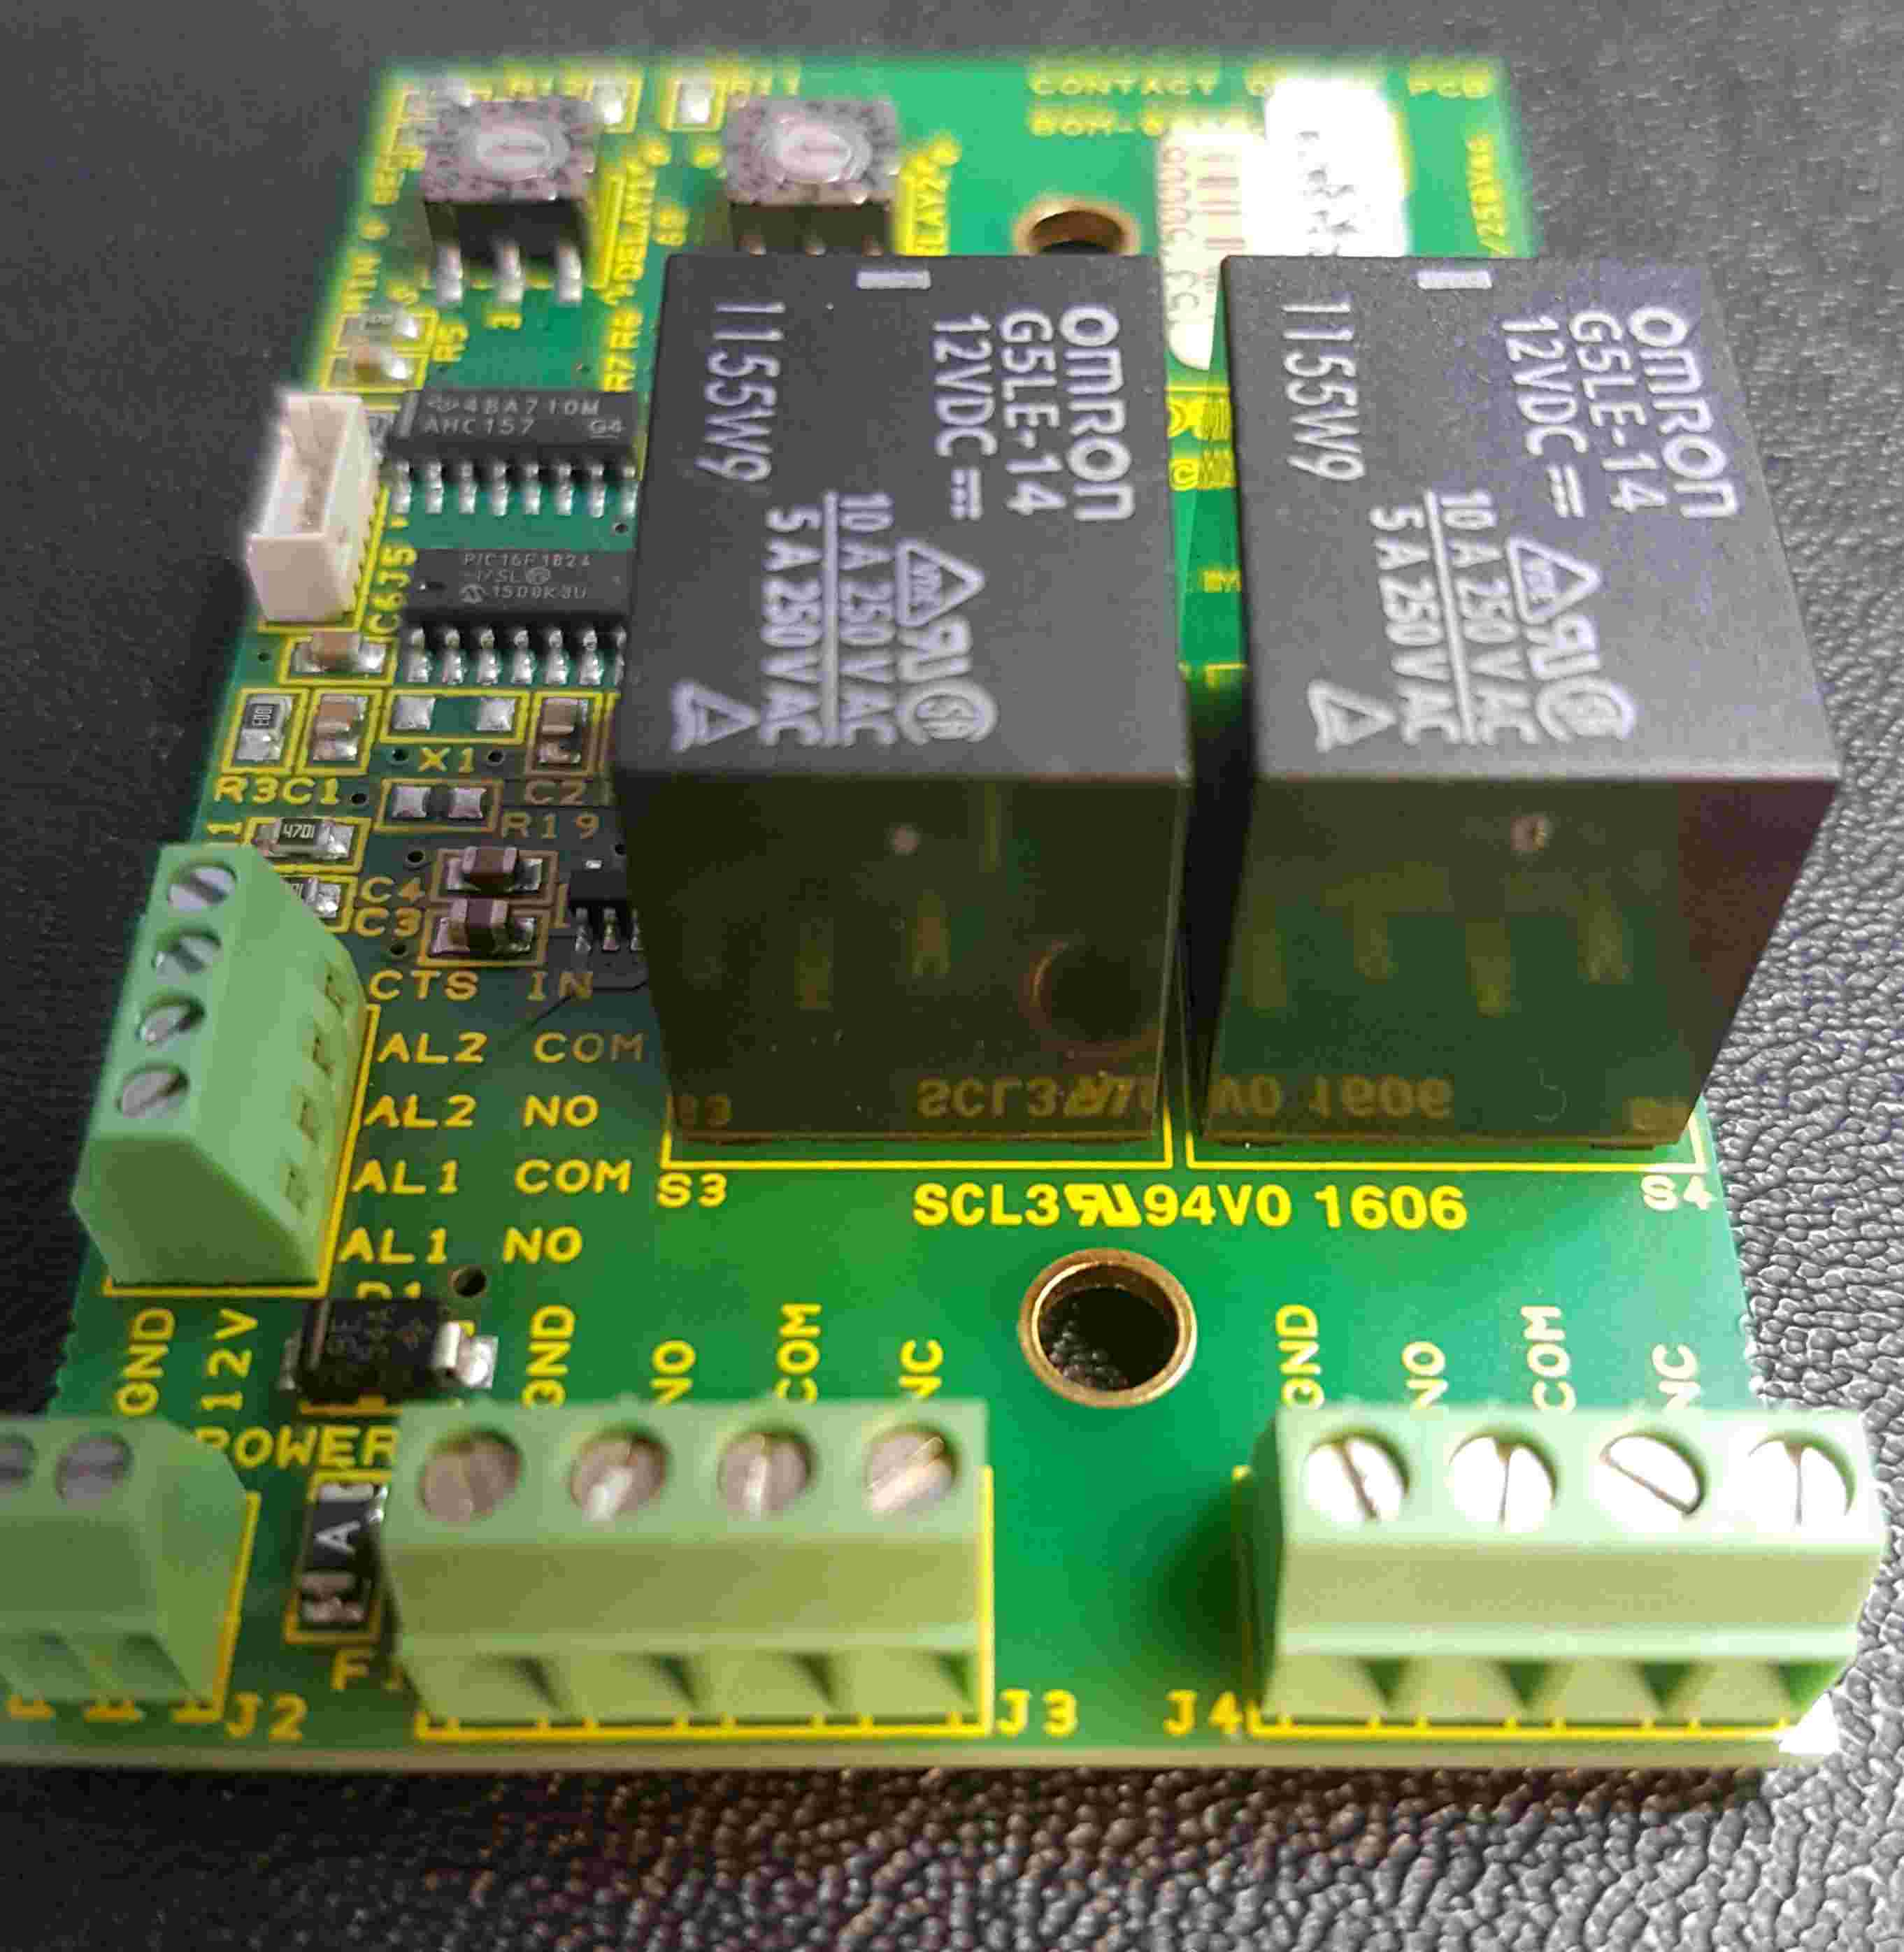 The delay increments and ±1% typical timing accuracy is provided by firmware running on a Microchip PIC16F1824 microcontroller and can easily be changed.